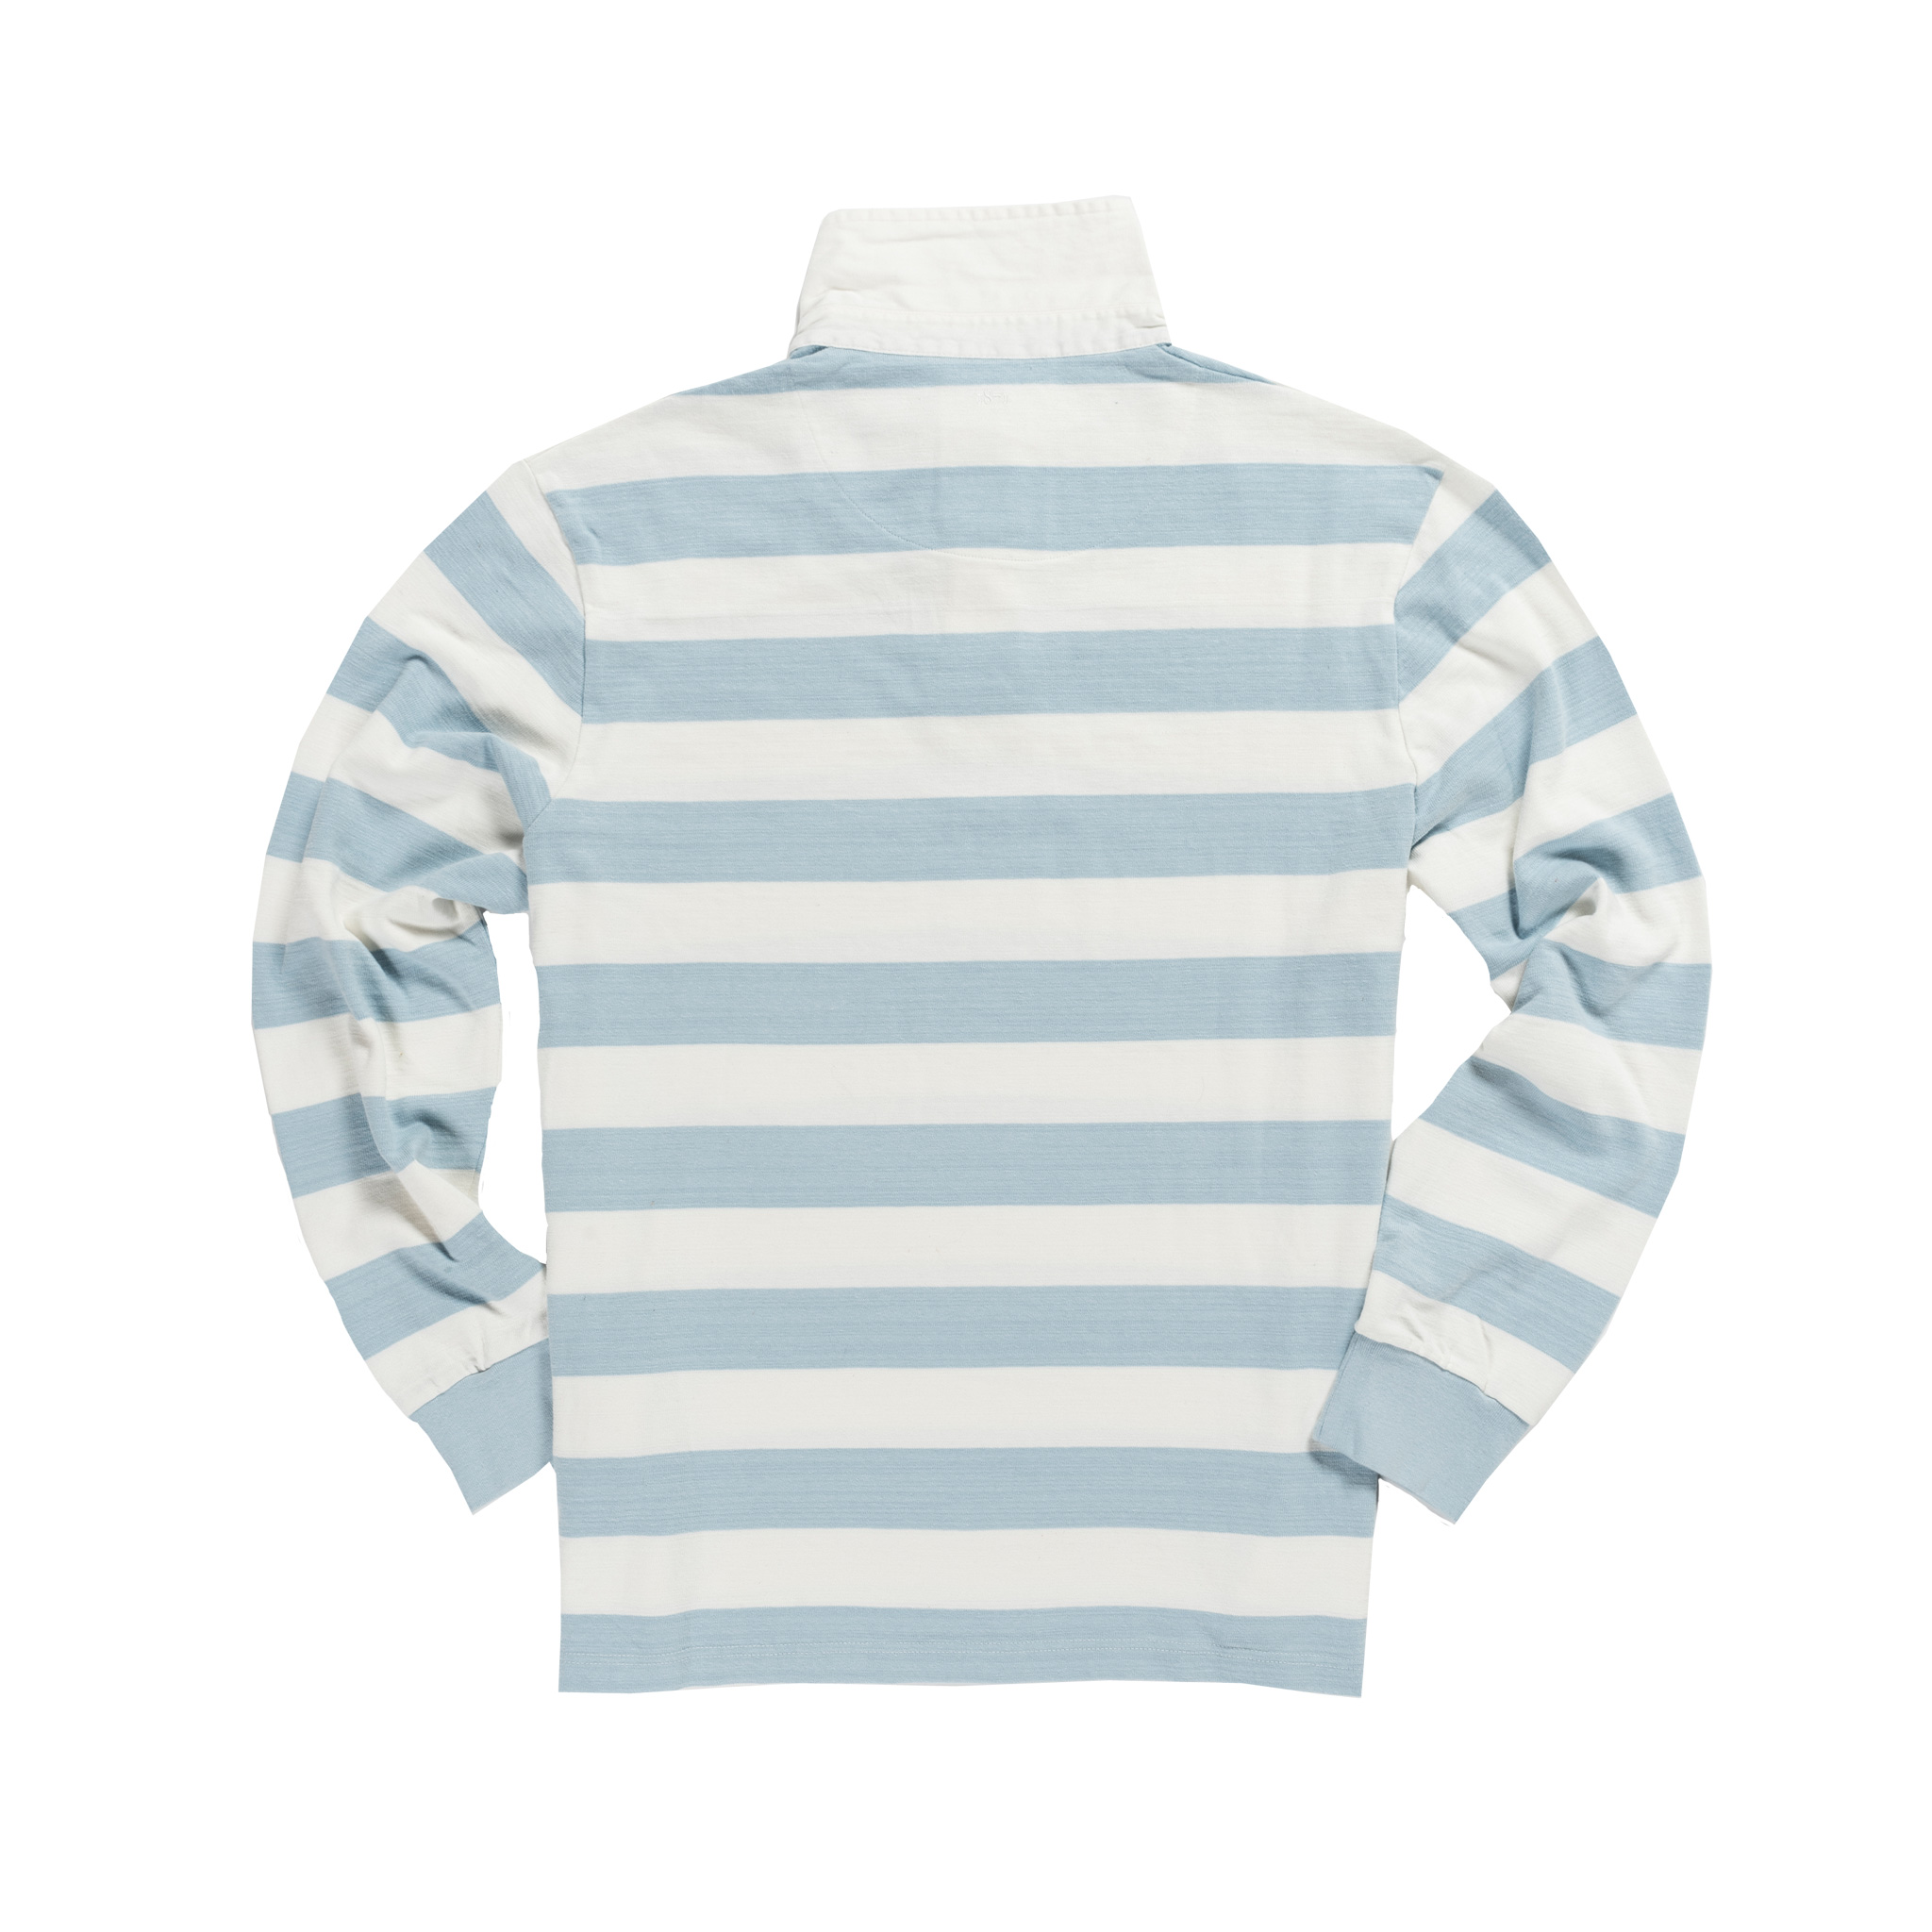 Pembroke 1842 Rugby Shirt Blue and White_Back